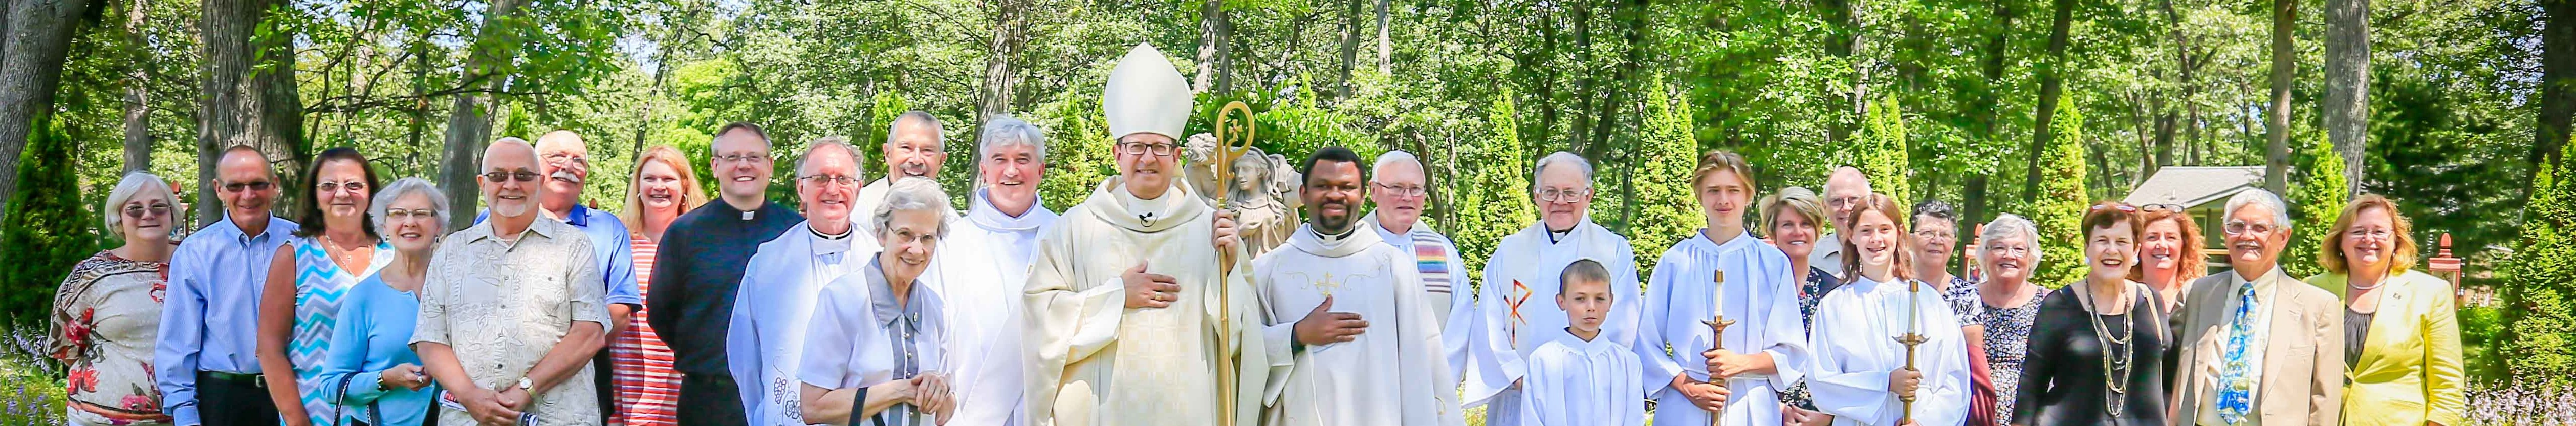 bishop walkowiak poses with fr. godfrey onyekwere and parishioners of st. mary of the woods in muskegon